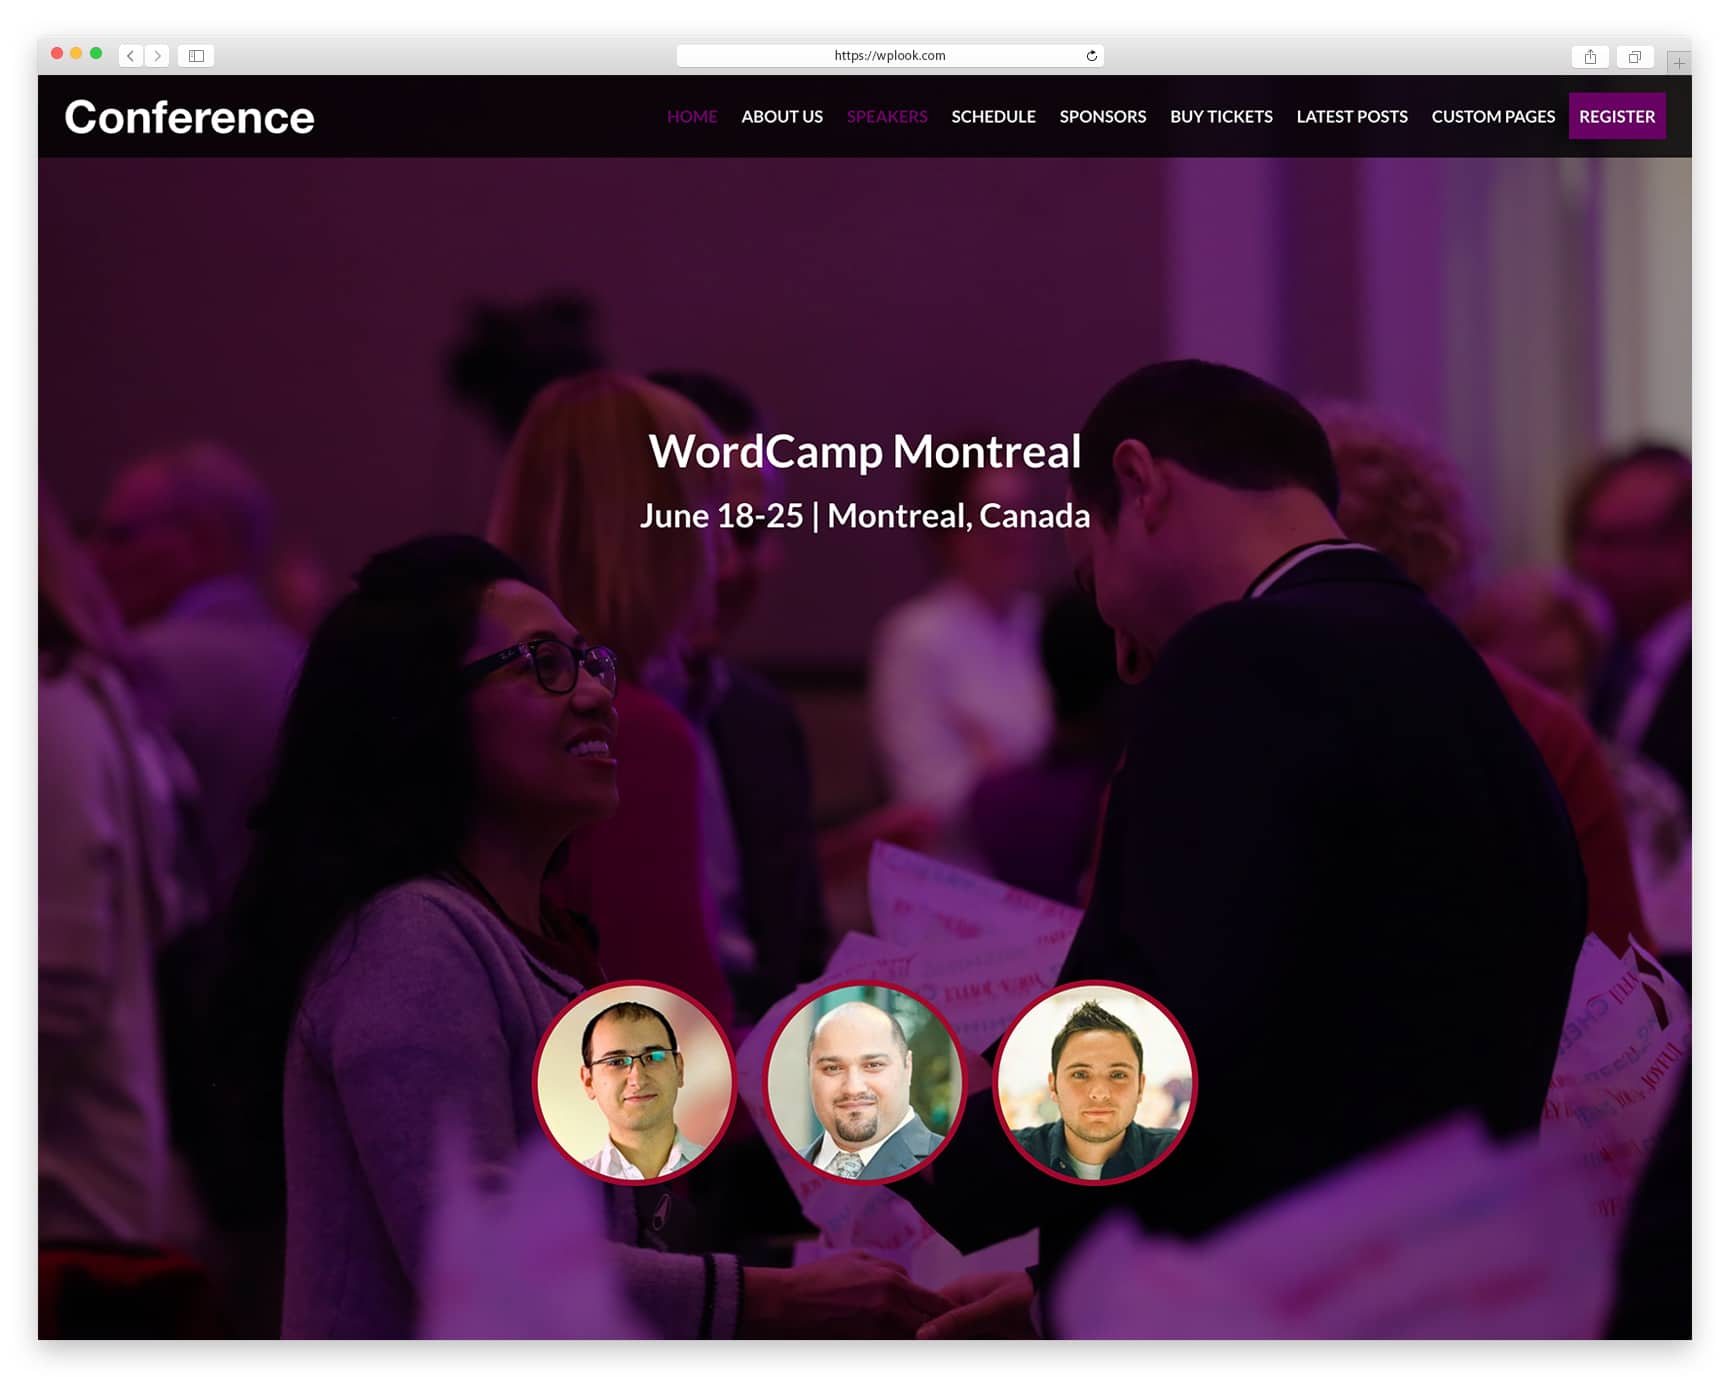 Conference - WordPress Theme for Conference and Events